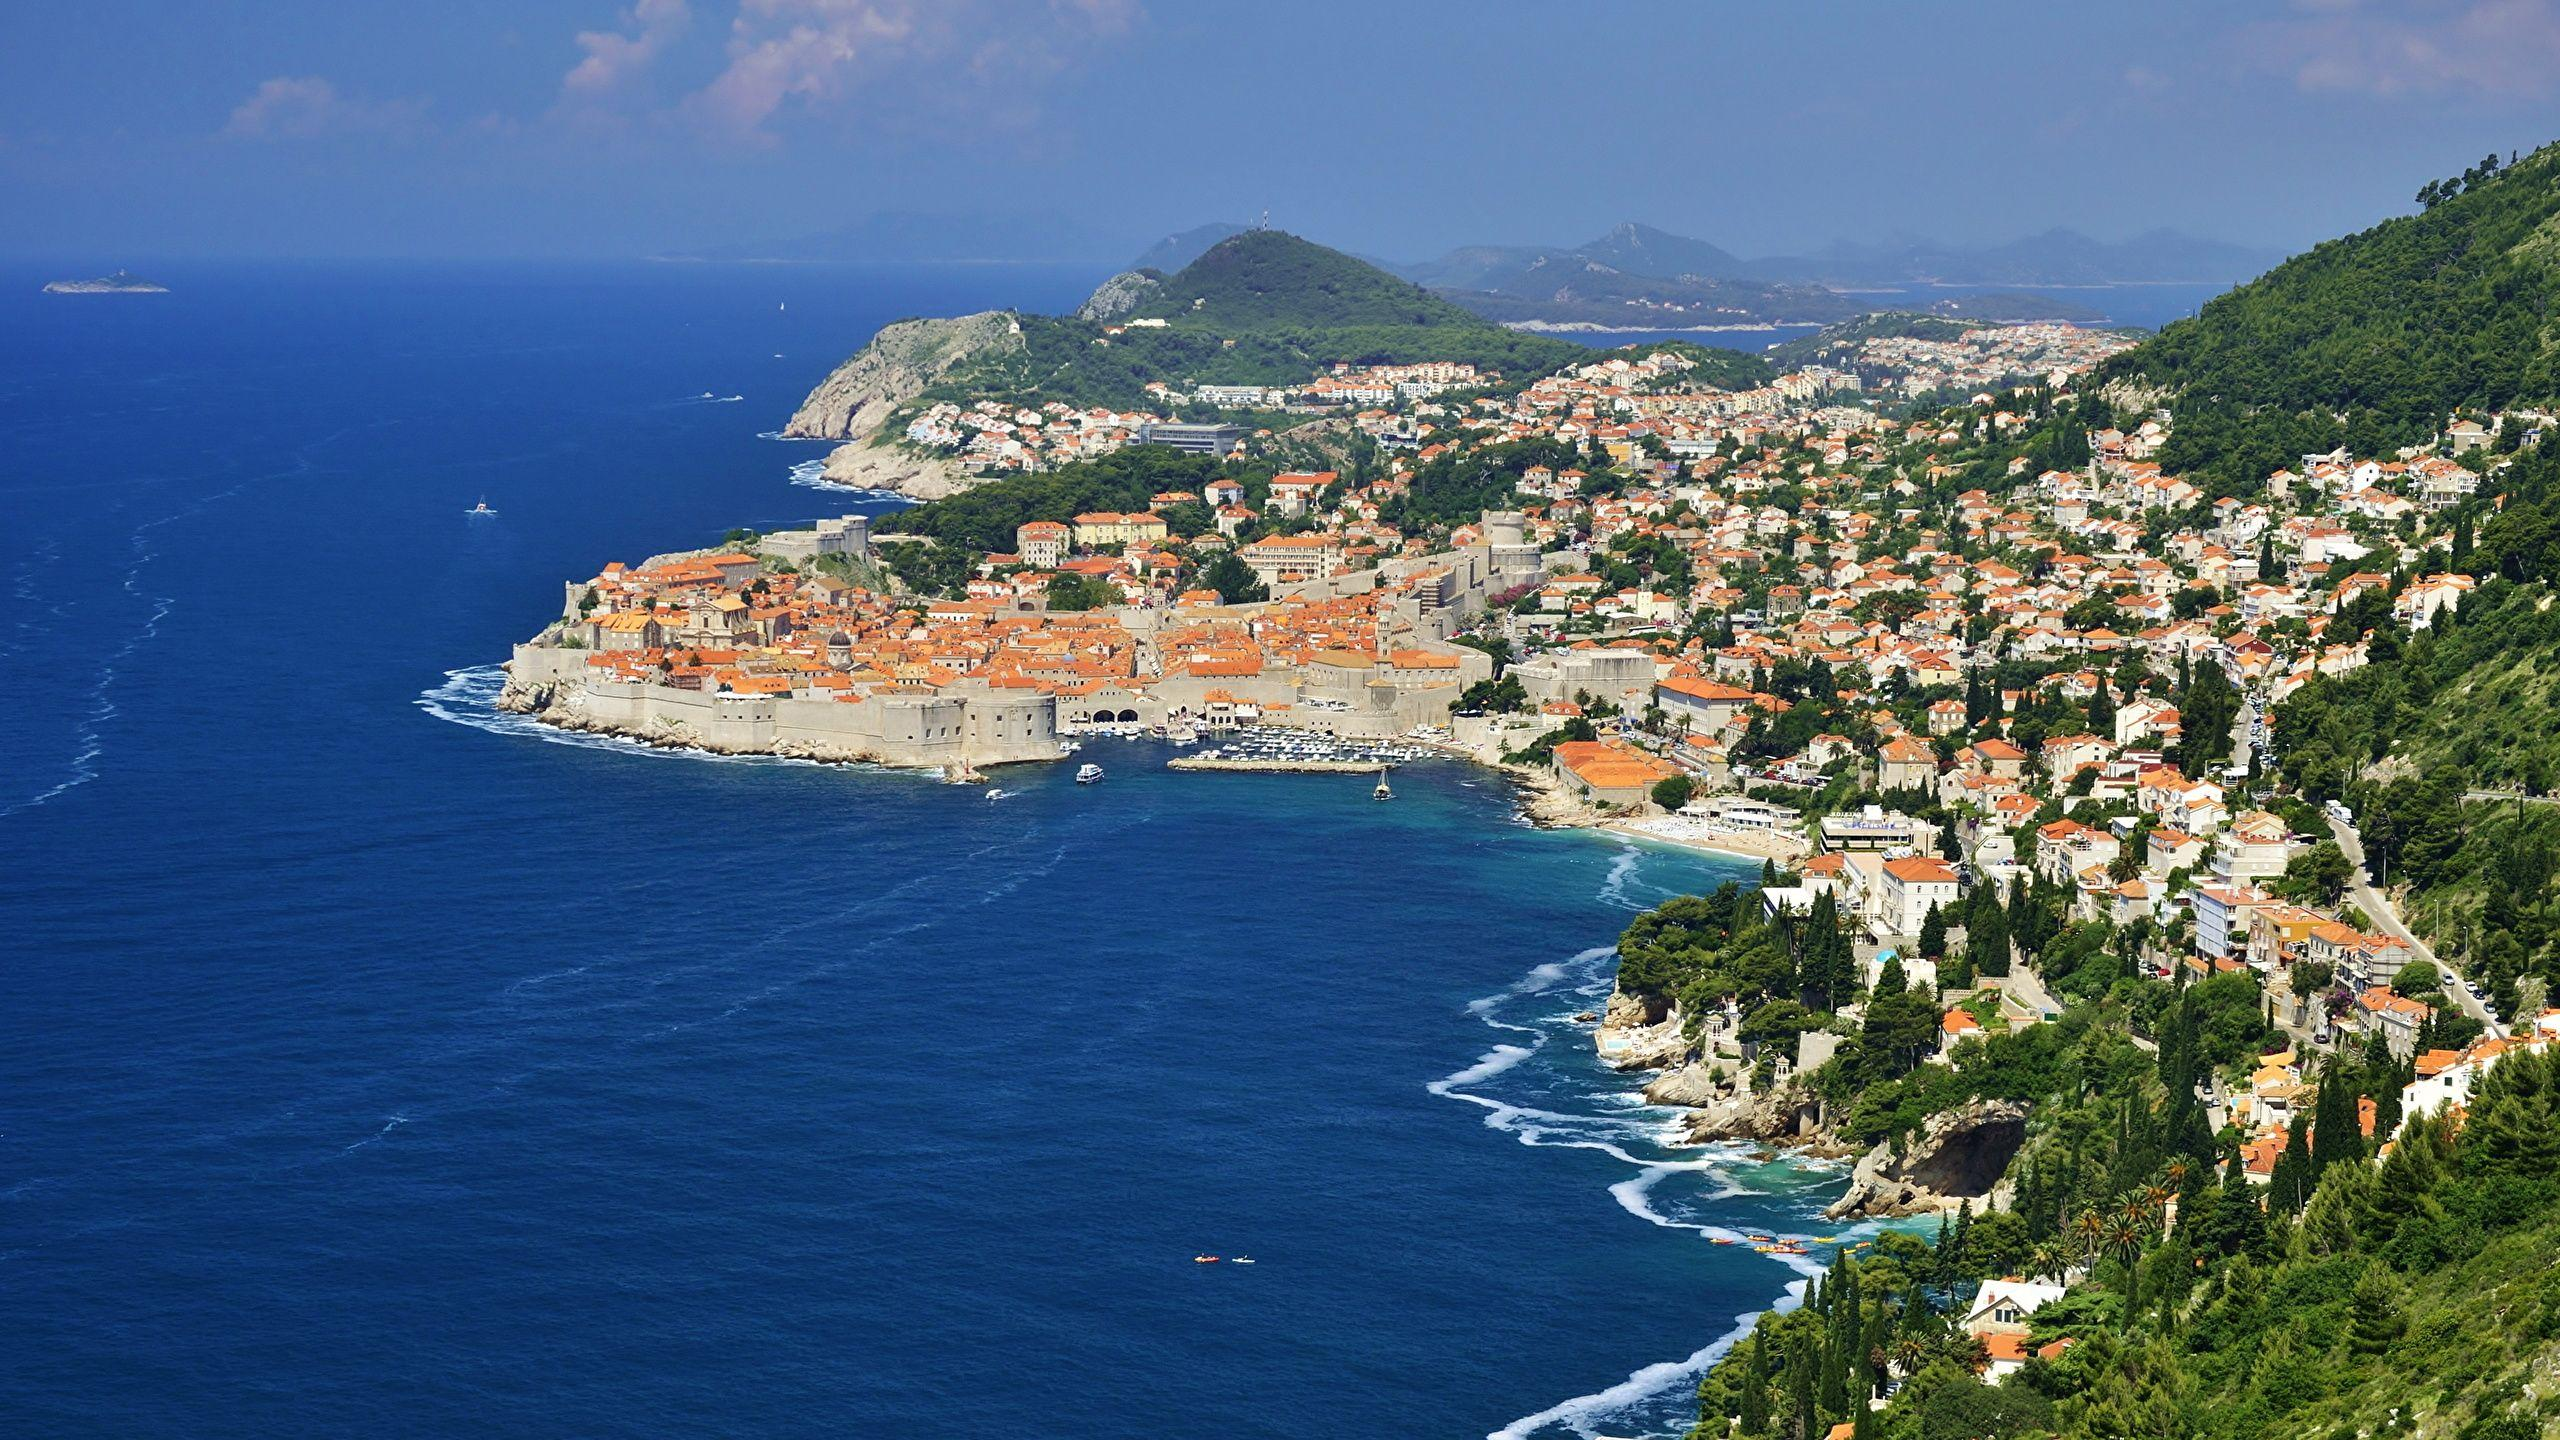 Wallpapers Croatia Dubrovnik Sea Cove Coast From above 2560x1440